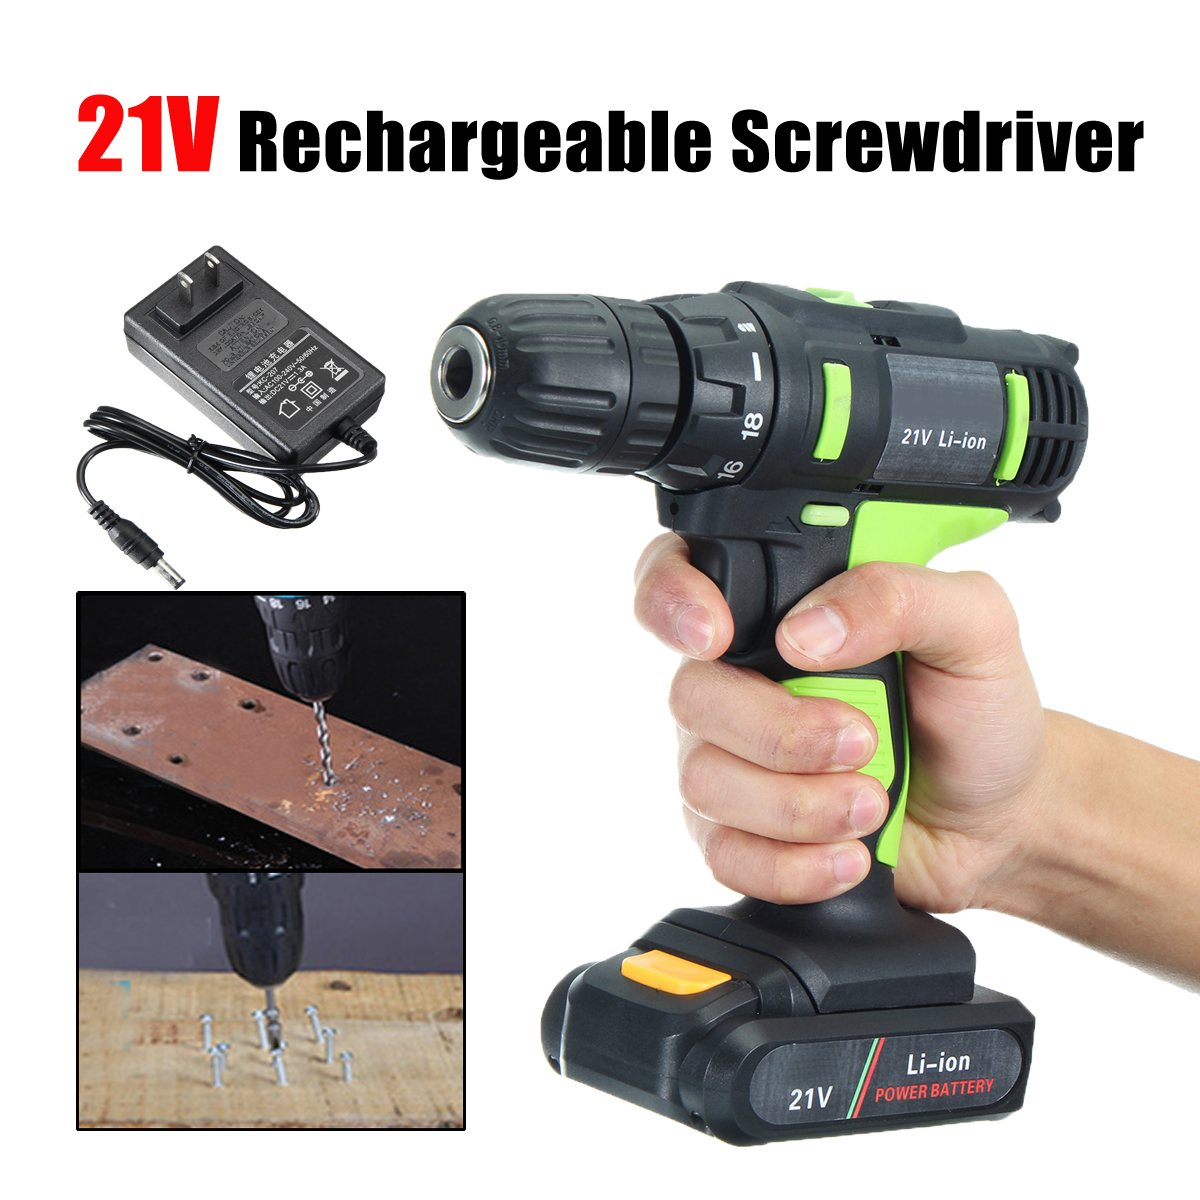 цена на 21V Electric Screwdriver Battery Screwdriver Cordless Drill Power Tools Professional Electric Torque Screwdriver + 2 Batteries